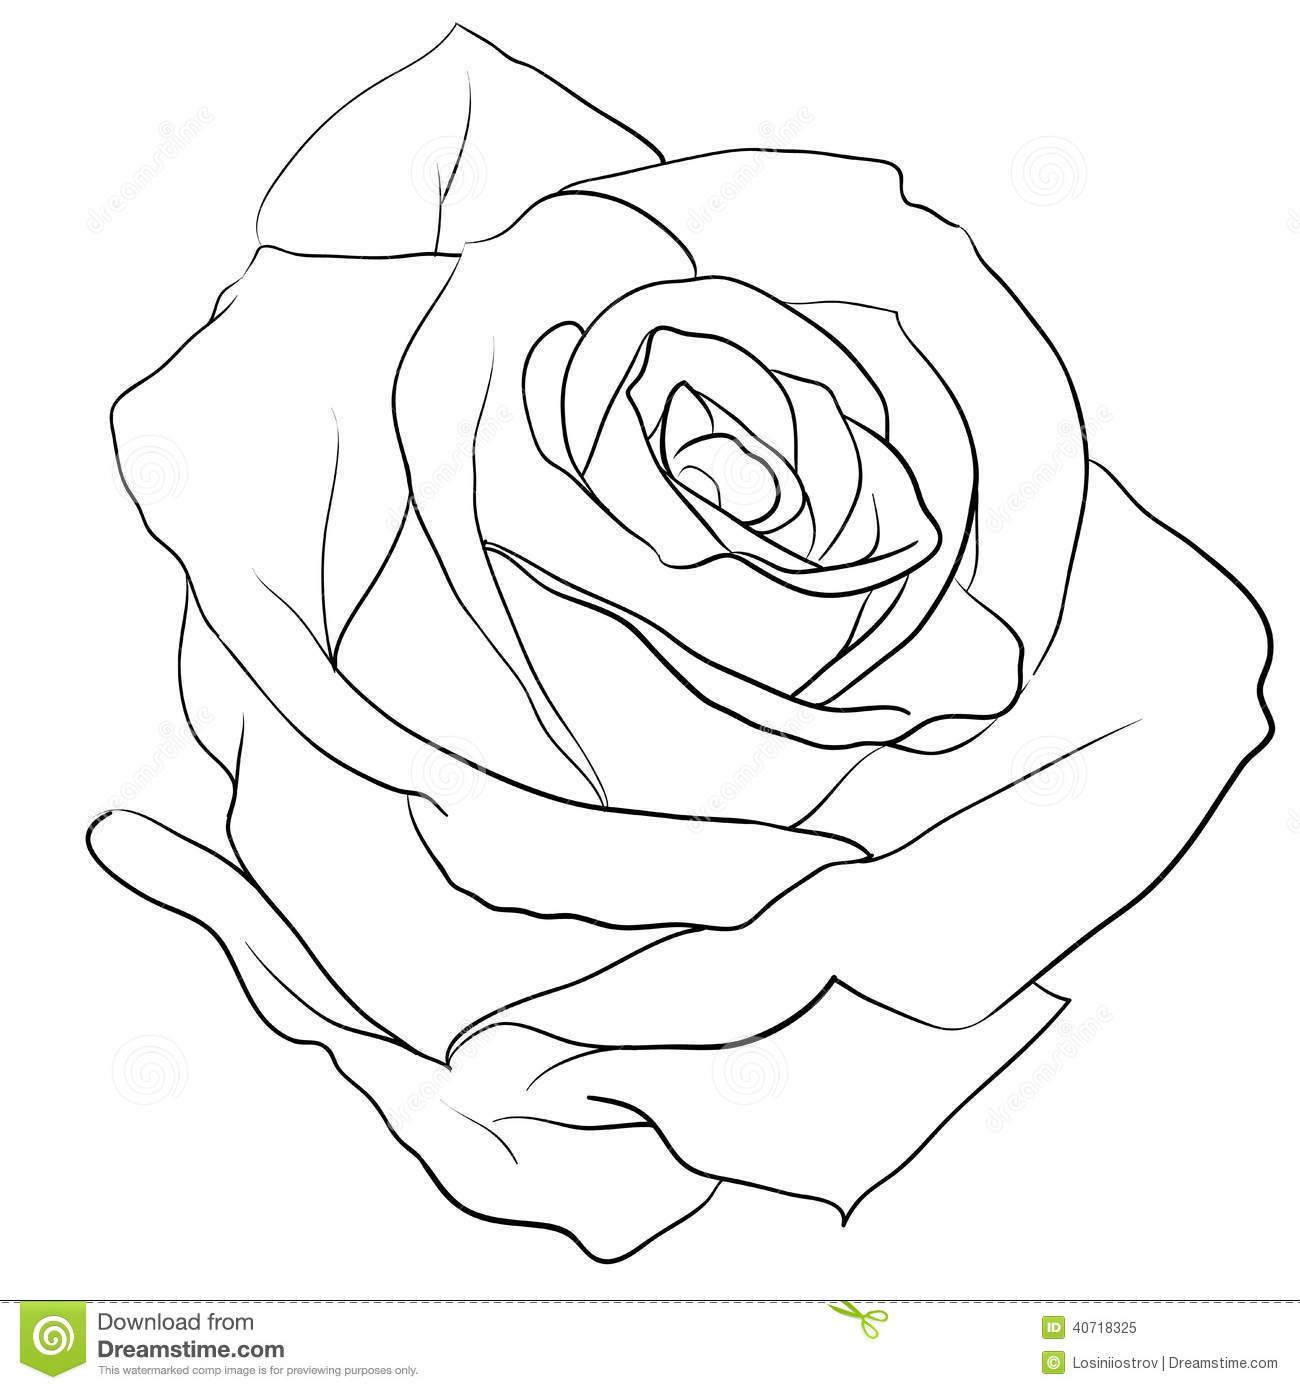 Simple Rose Tattoo Outline: Rose Colouring Page For Adults